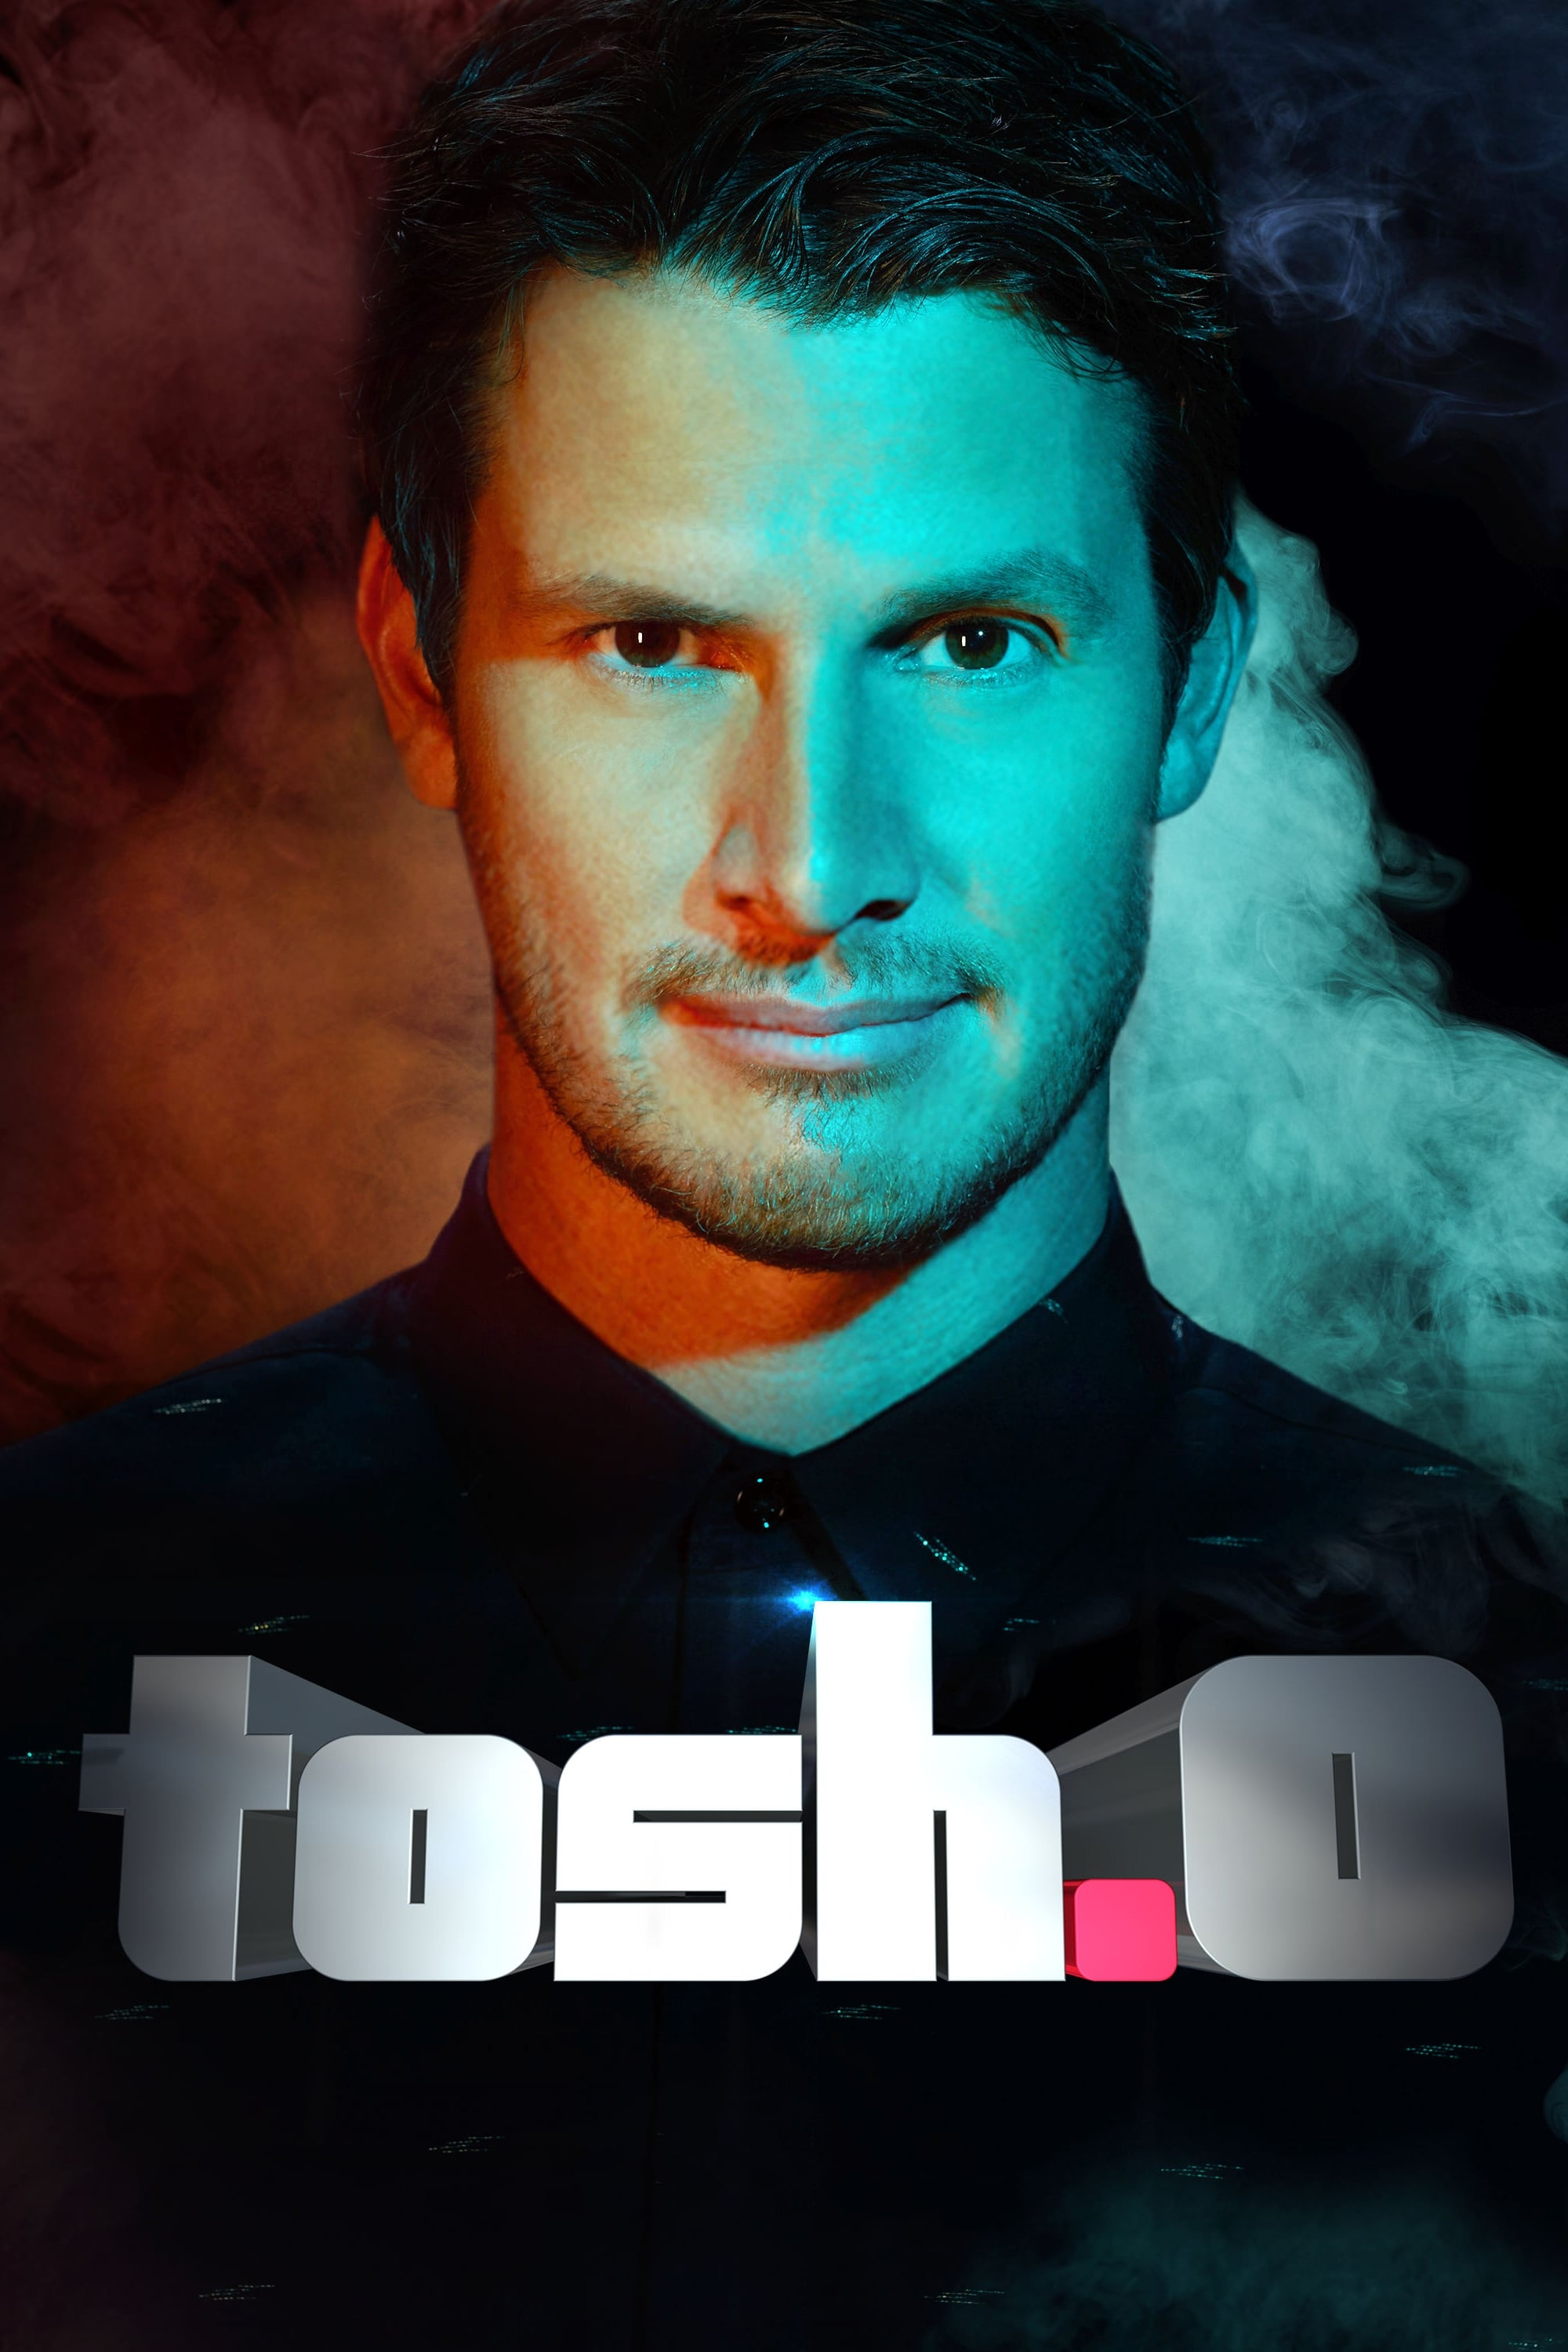 Tosh.0 series tv complet